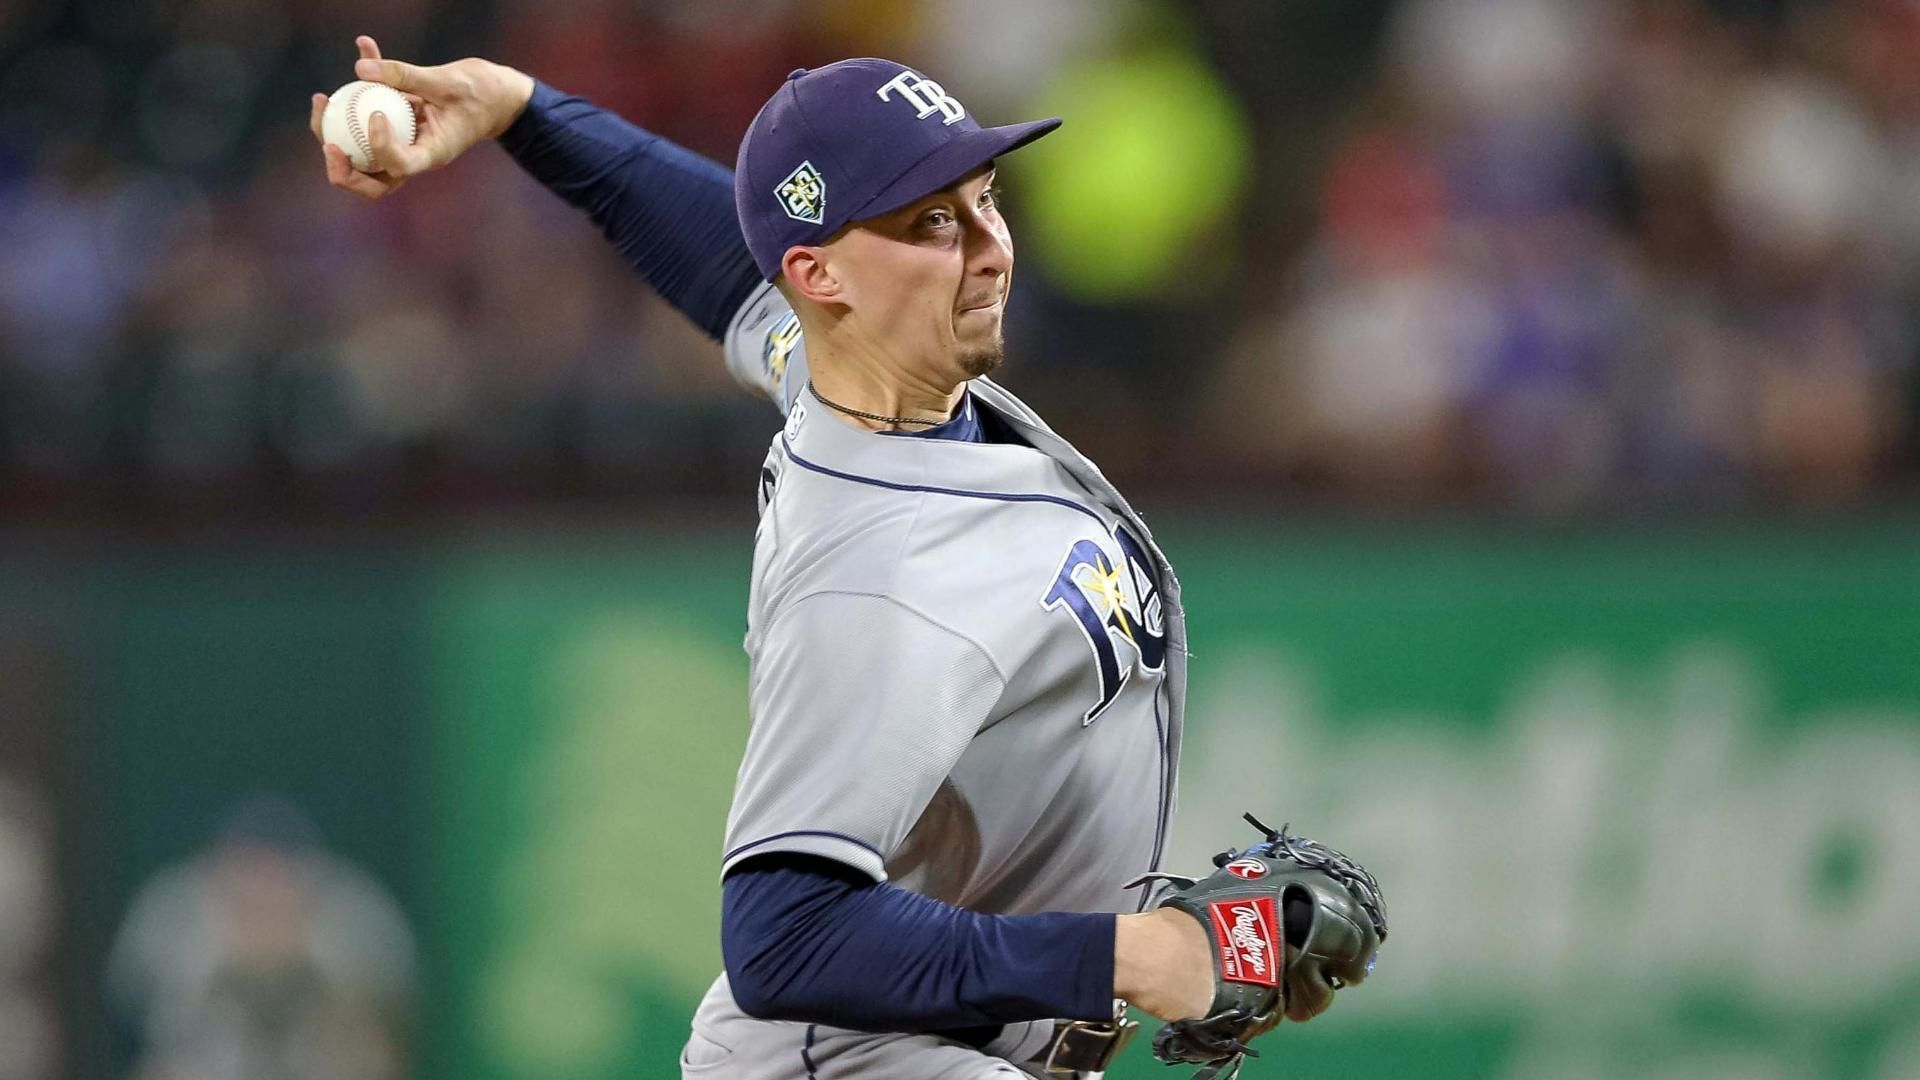 Snell records his 200th strikeout and 20th win